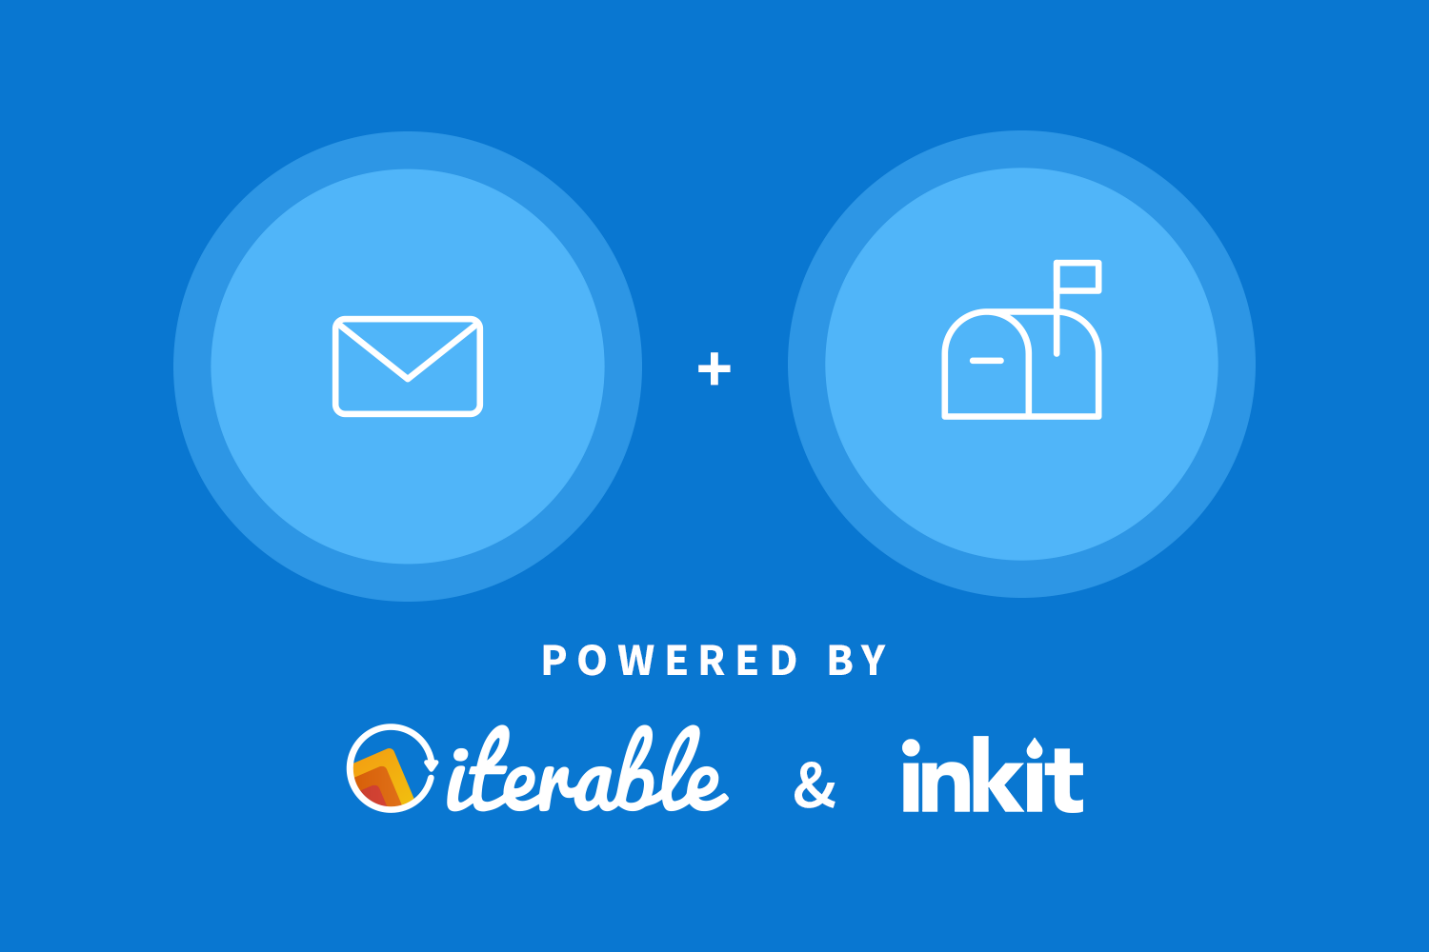 Iterable and Inkit